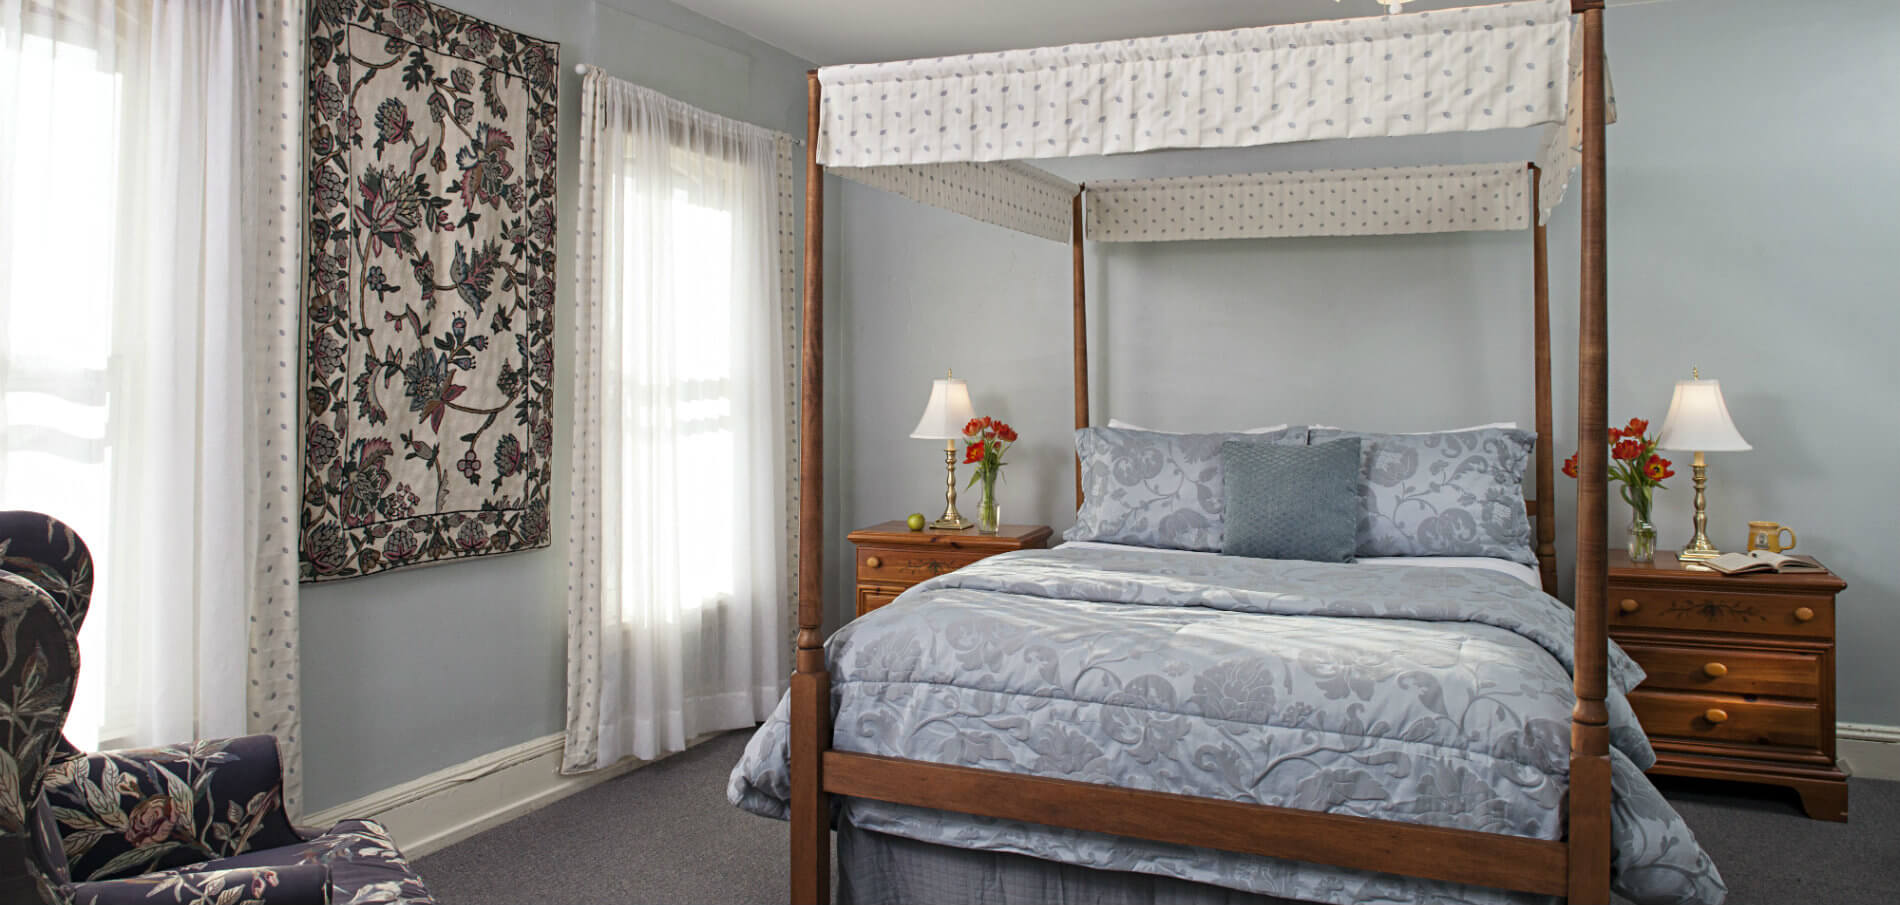 wood four poster bed with soft blue linens in bright room with decorative tapestry on wall between two windows